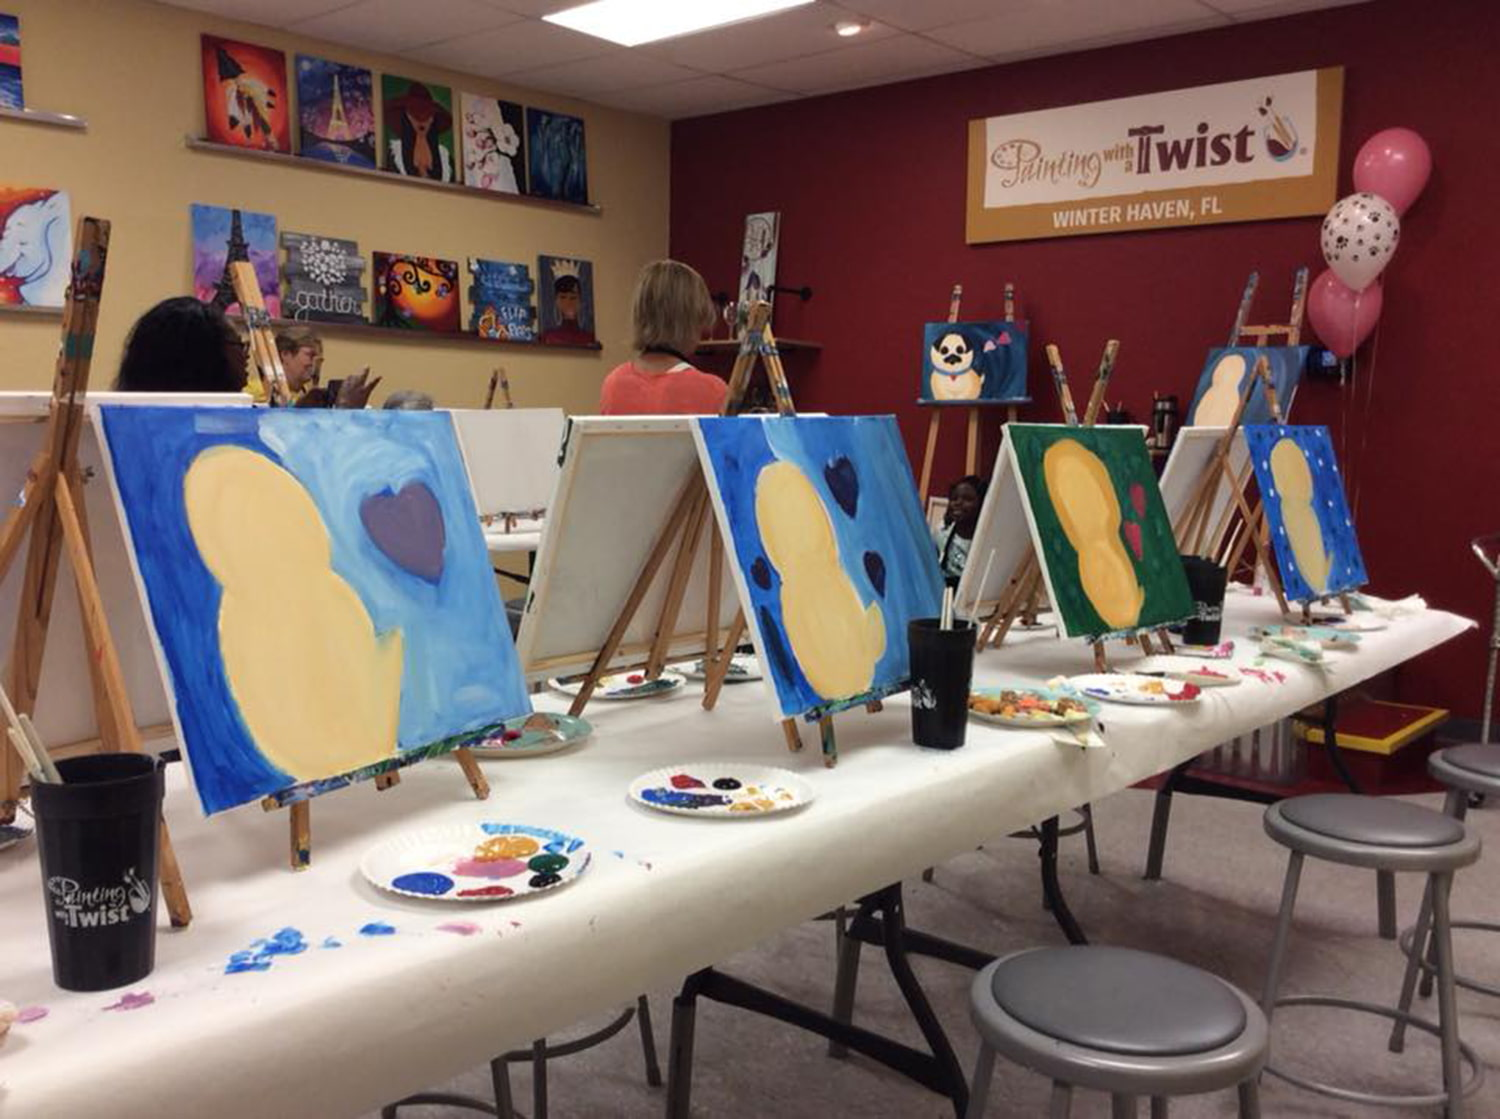 Participant paintings on table during class at Painting with a Twist in Winter Haven, FL